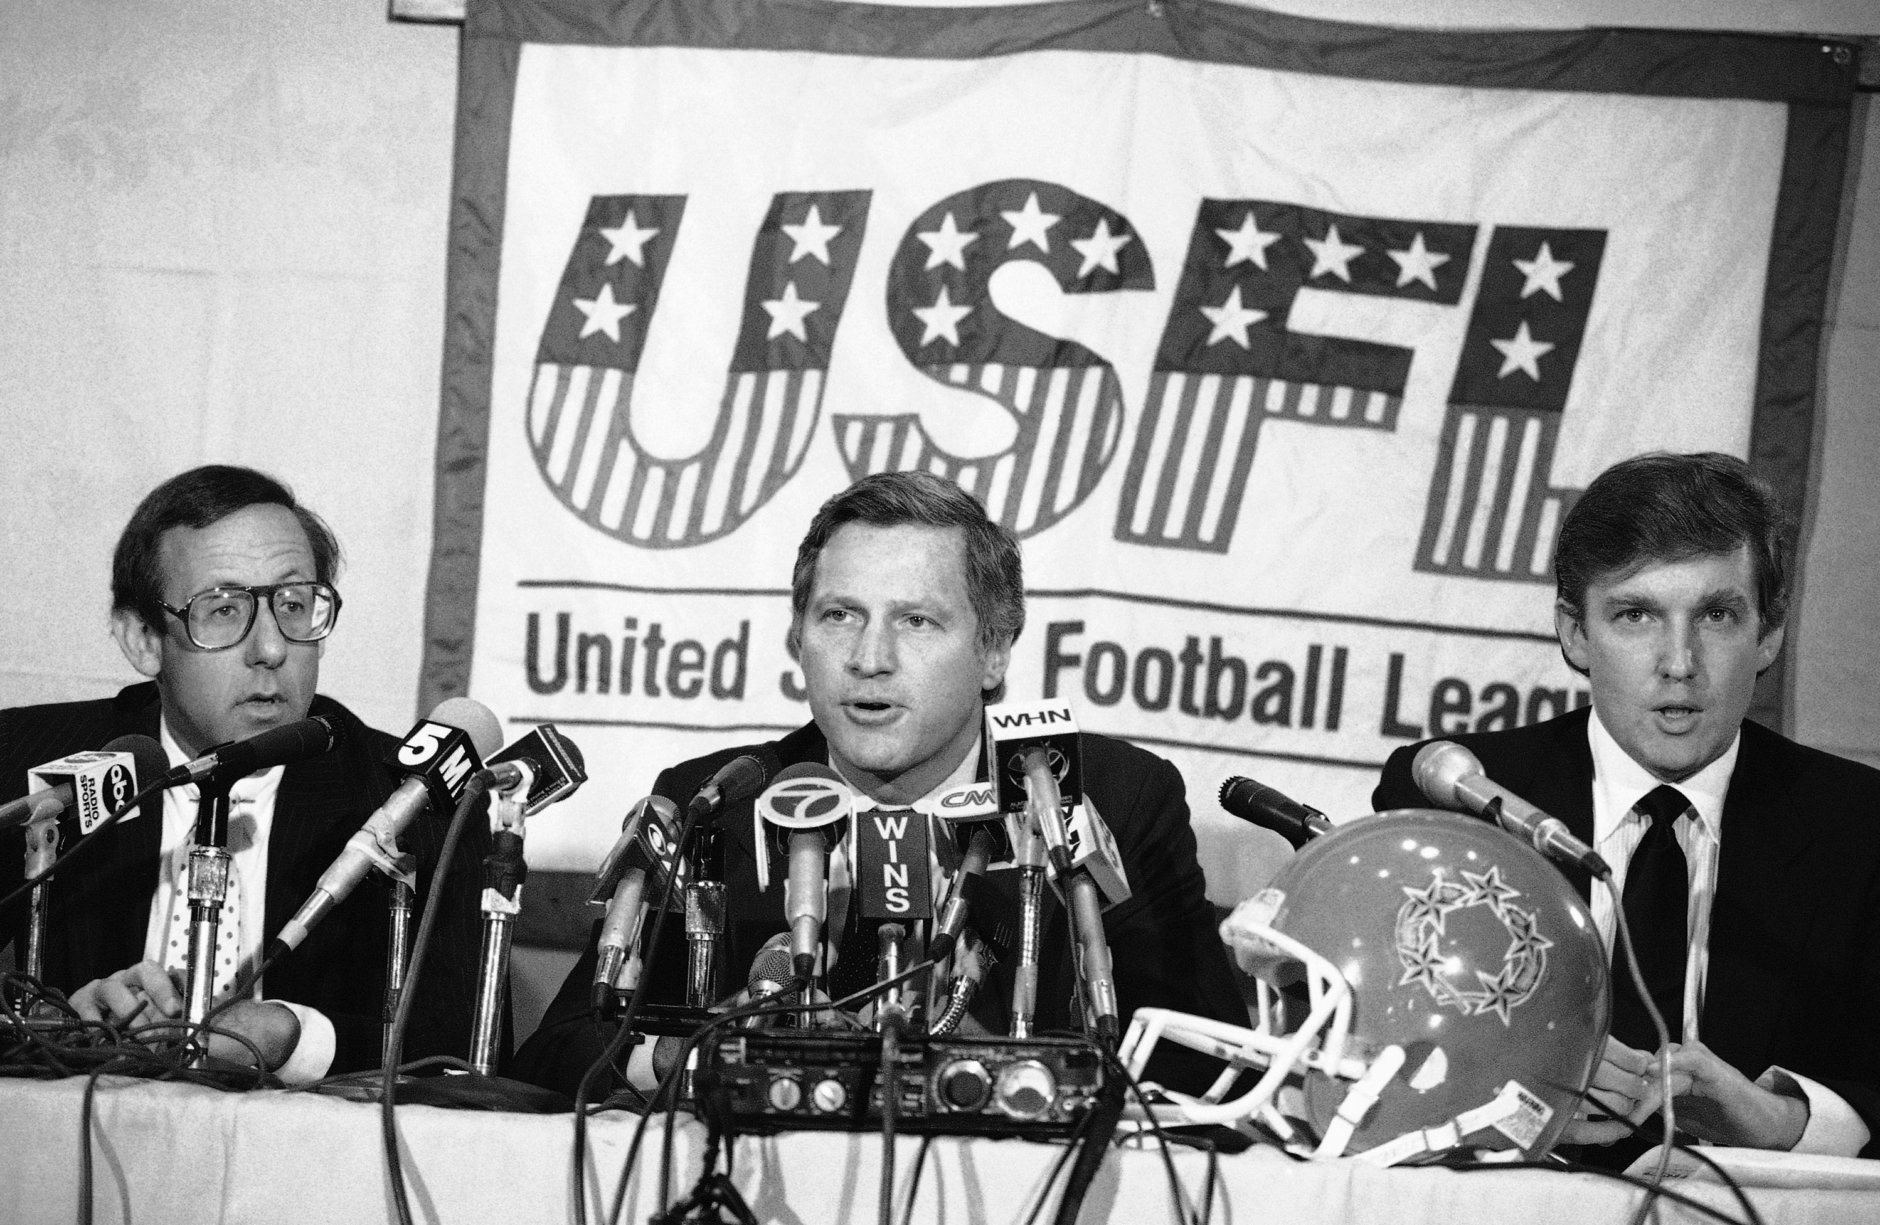 New York real estate magnates Stephen Ross, left, and Donald Trump, right, speak about the agreement they have reached in principle to merge the Houston Gamblers and New Jersey Generals football franchises, Thursday, August 2, 1985 in New York. USFL Commissioner Harry L. Usher, center announced the agreement. (AP Photo/Marty Lederhandler)